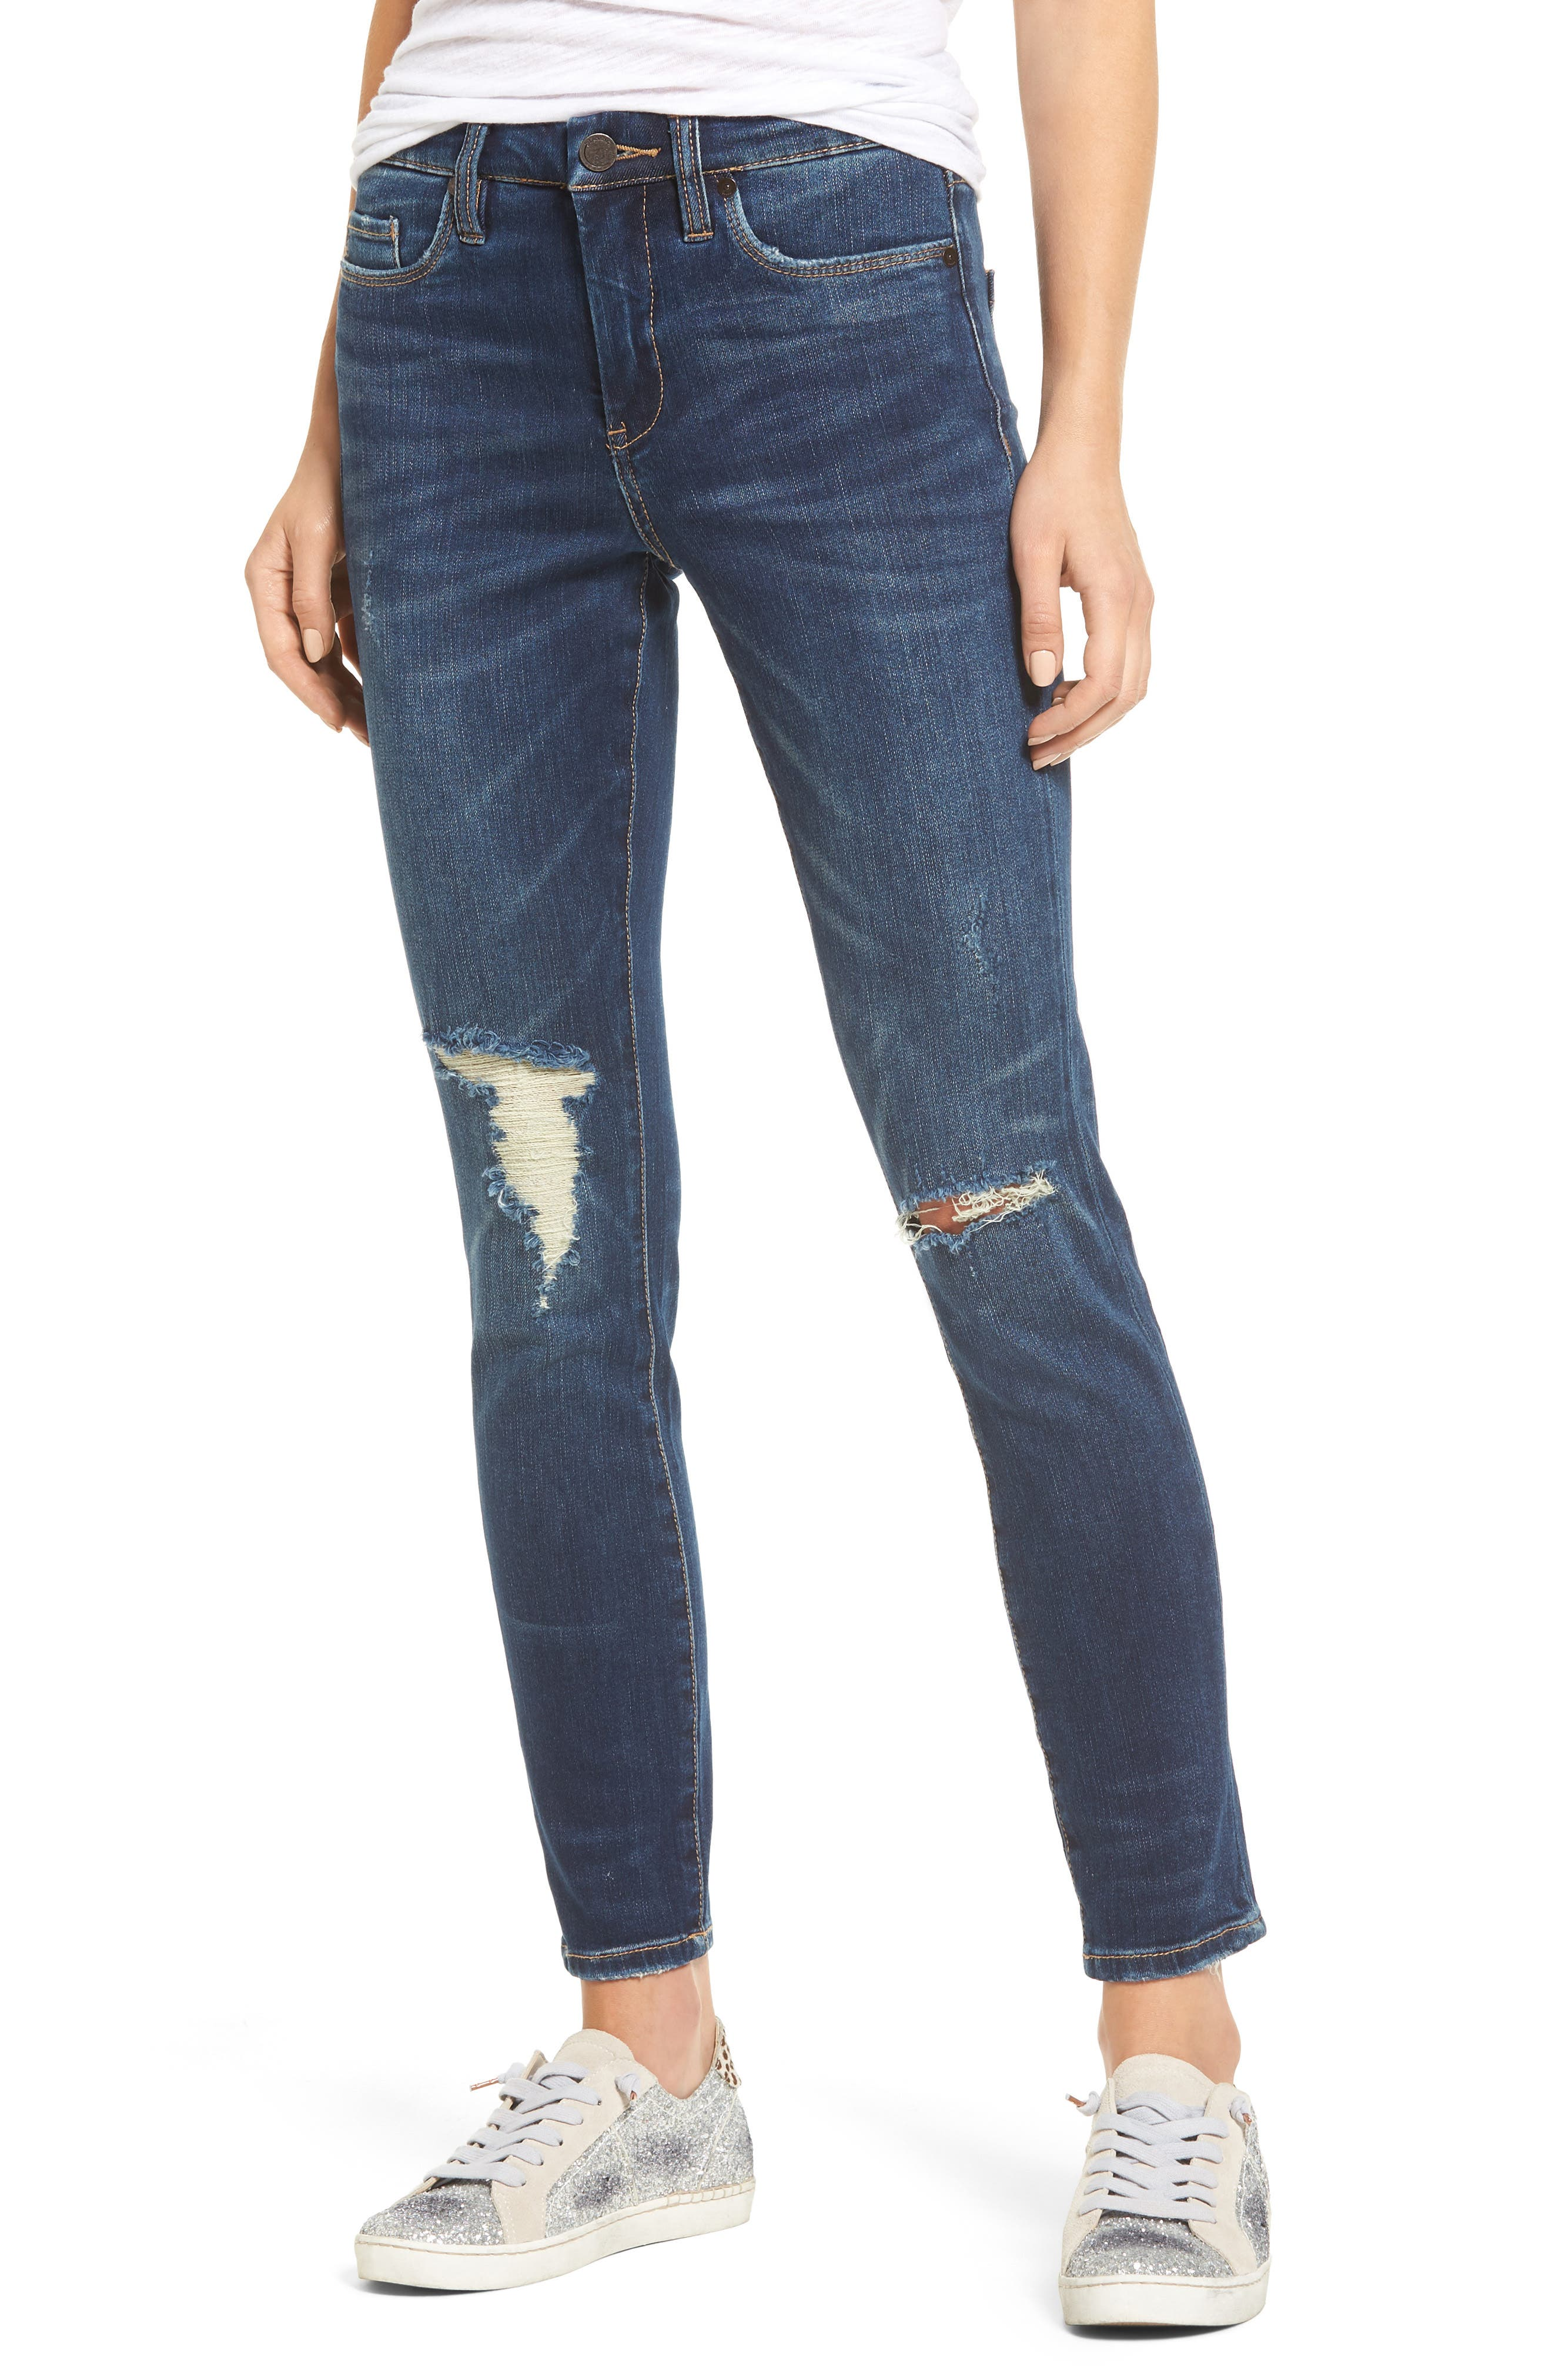 Alternate Image 1 Selected - BLANKNYC Ripped Ankle Skinny Jeans (Fresh Brew)